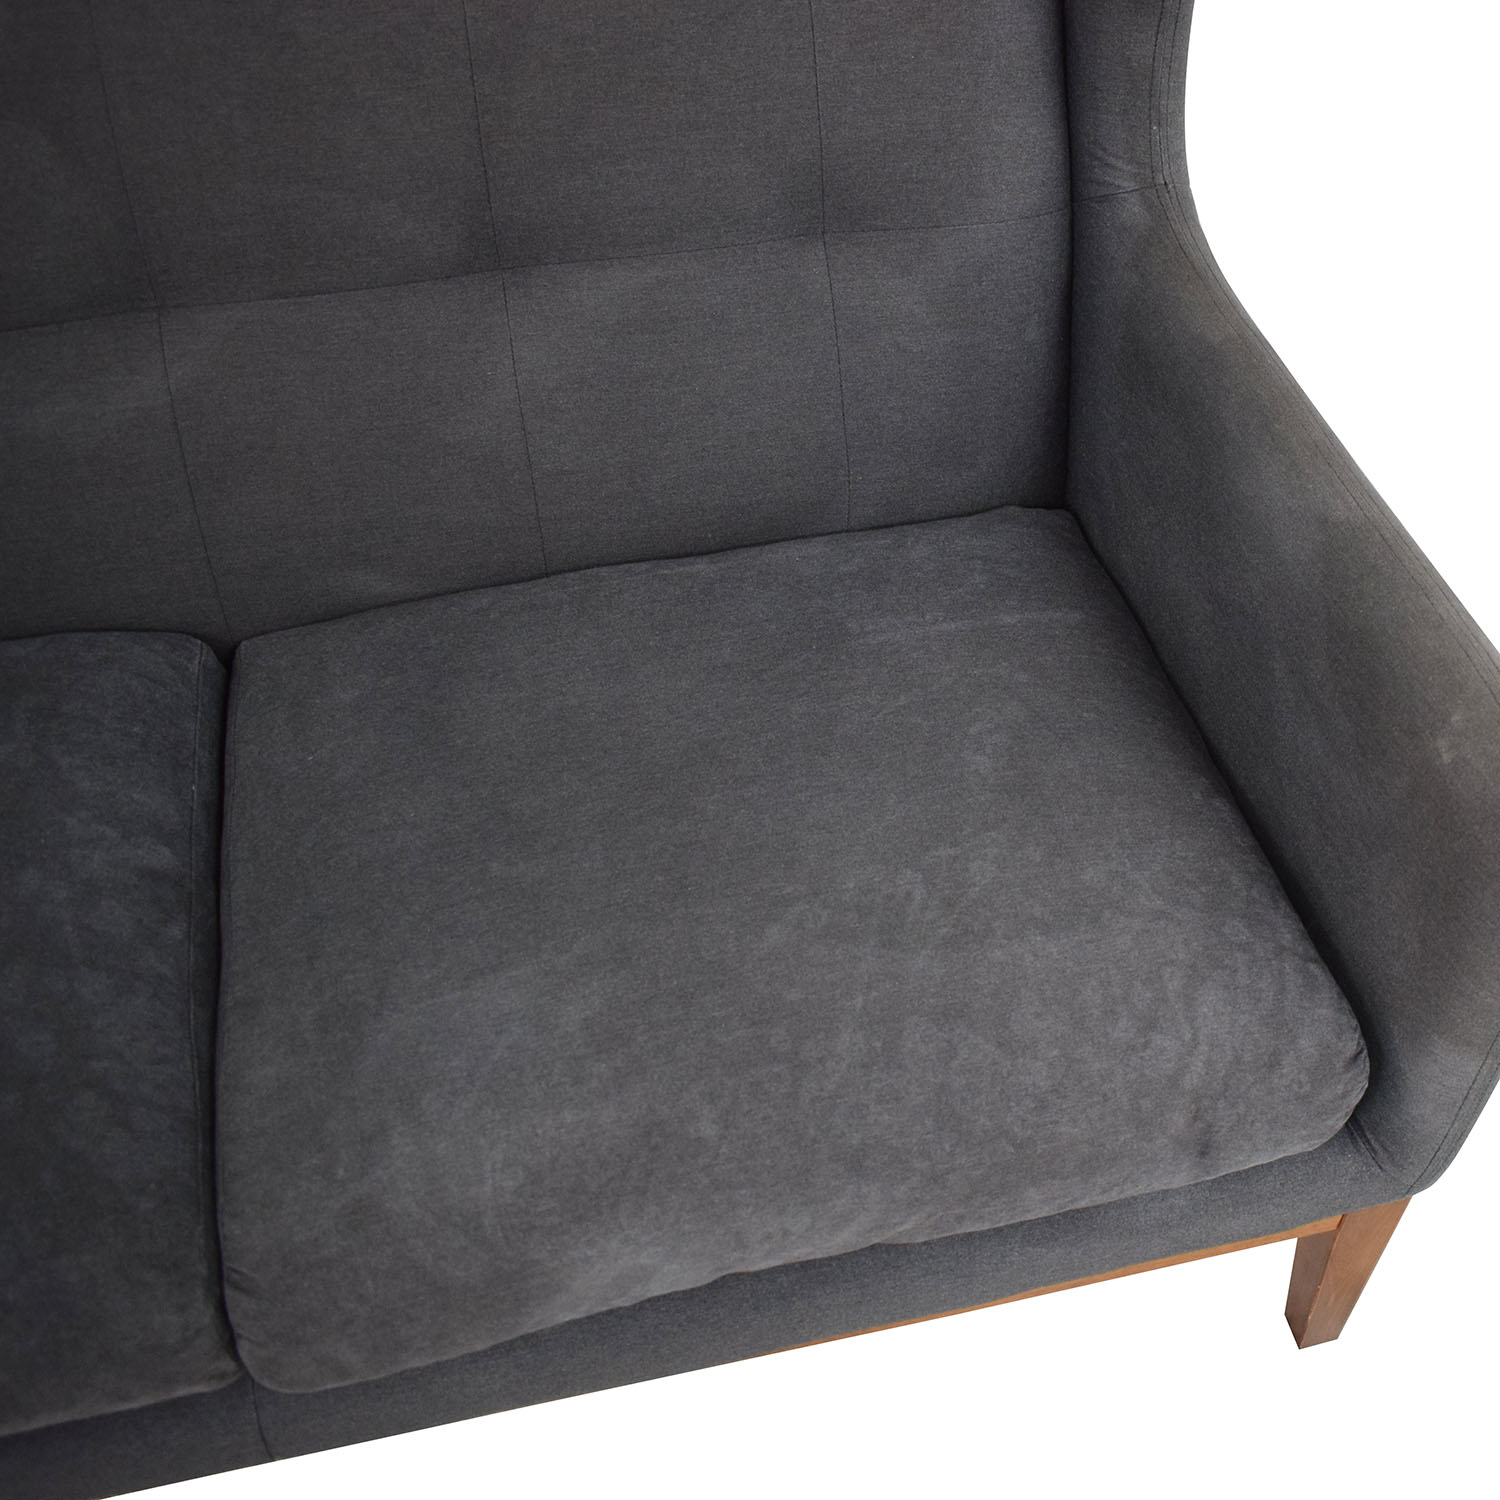 West Elm West Elm James Harrison Settee for sale